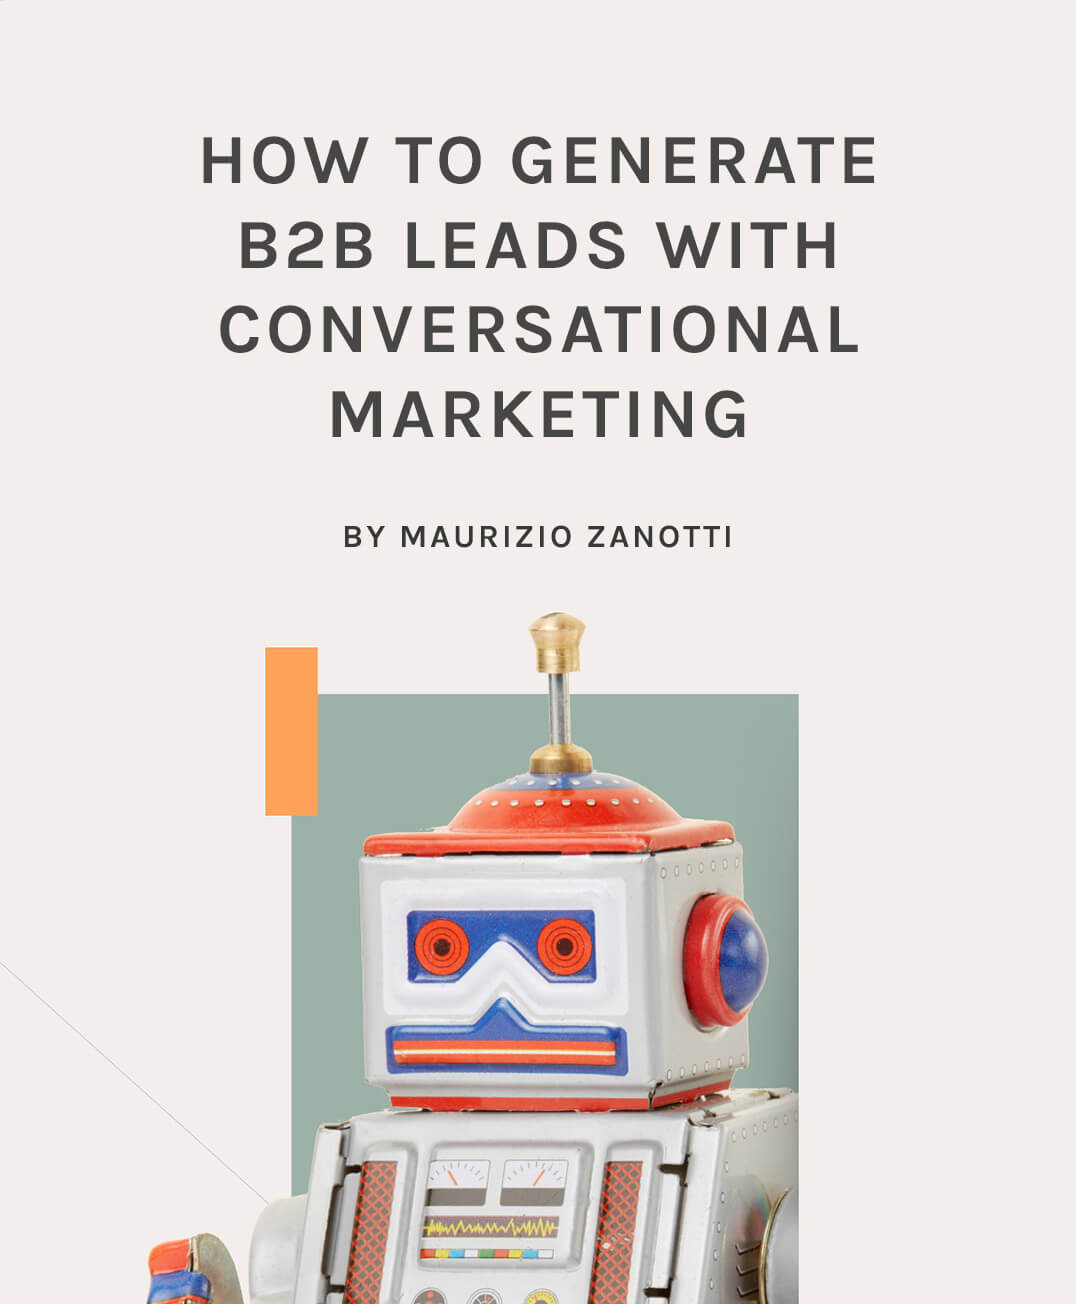 How To Generate B2B Leads With Conversational Marketing